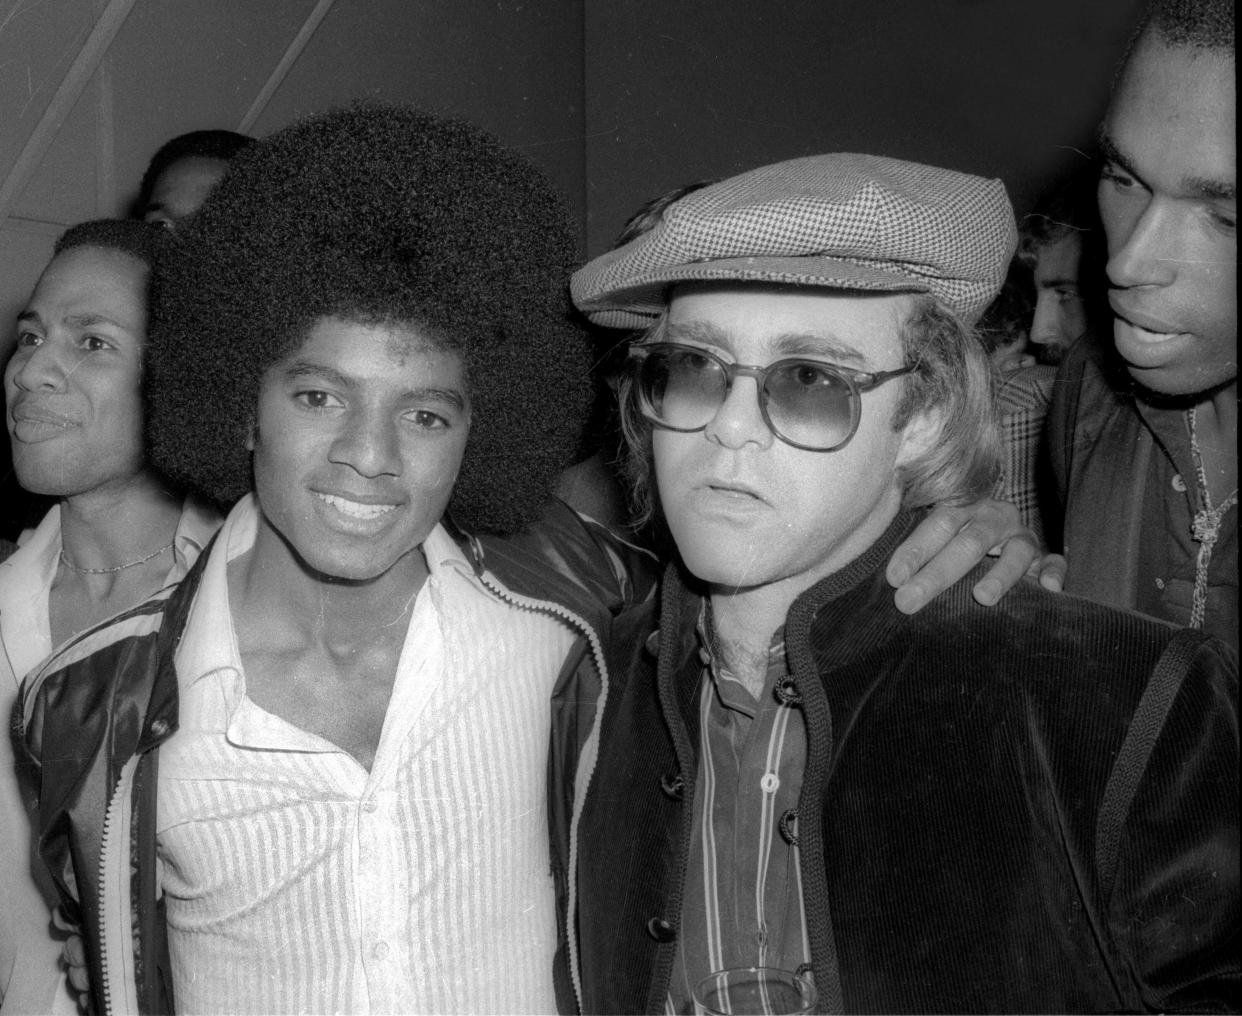 Michael Jackson and Elton John at Studio 54 1978 (Adam Scull/PHOTOlink/MediaPunch /IPX)